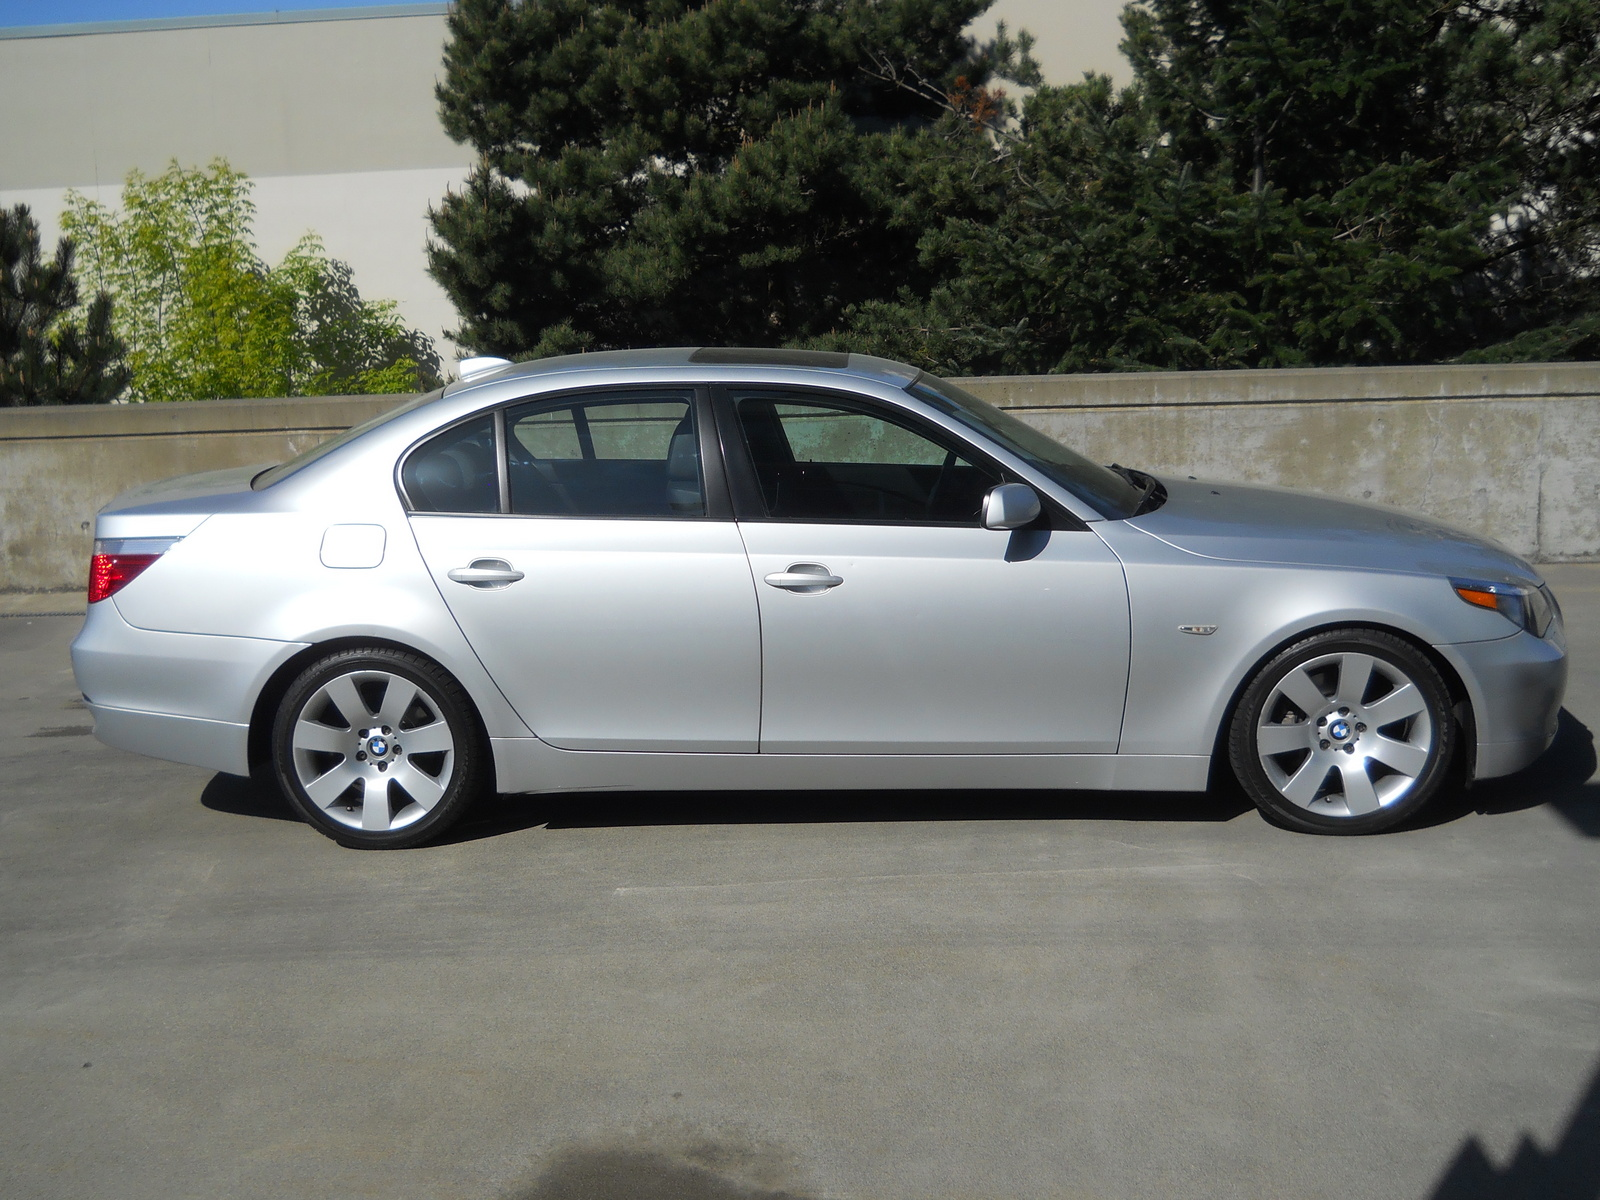 BMW 5 series 525i 2004 photo - 12